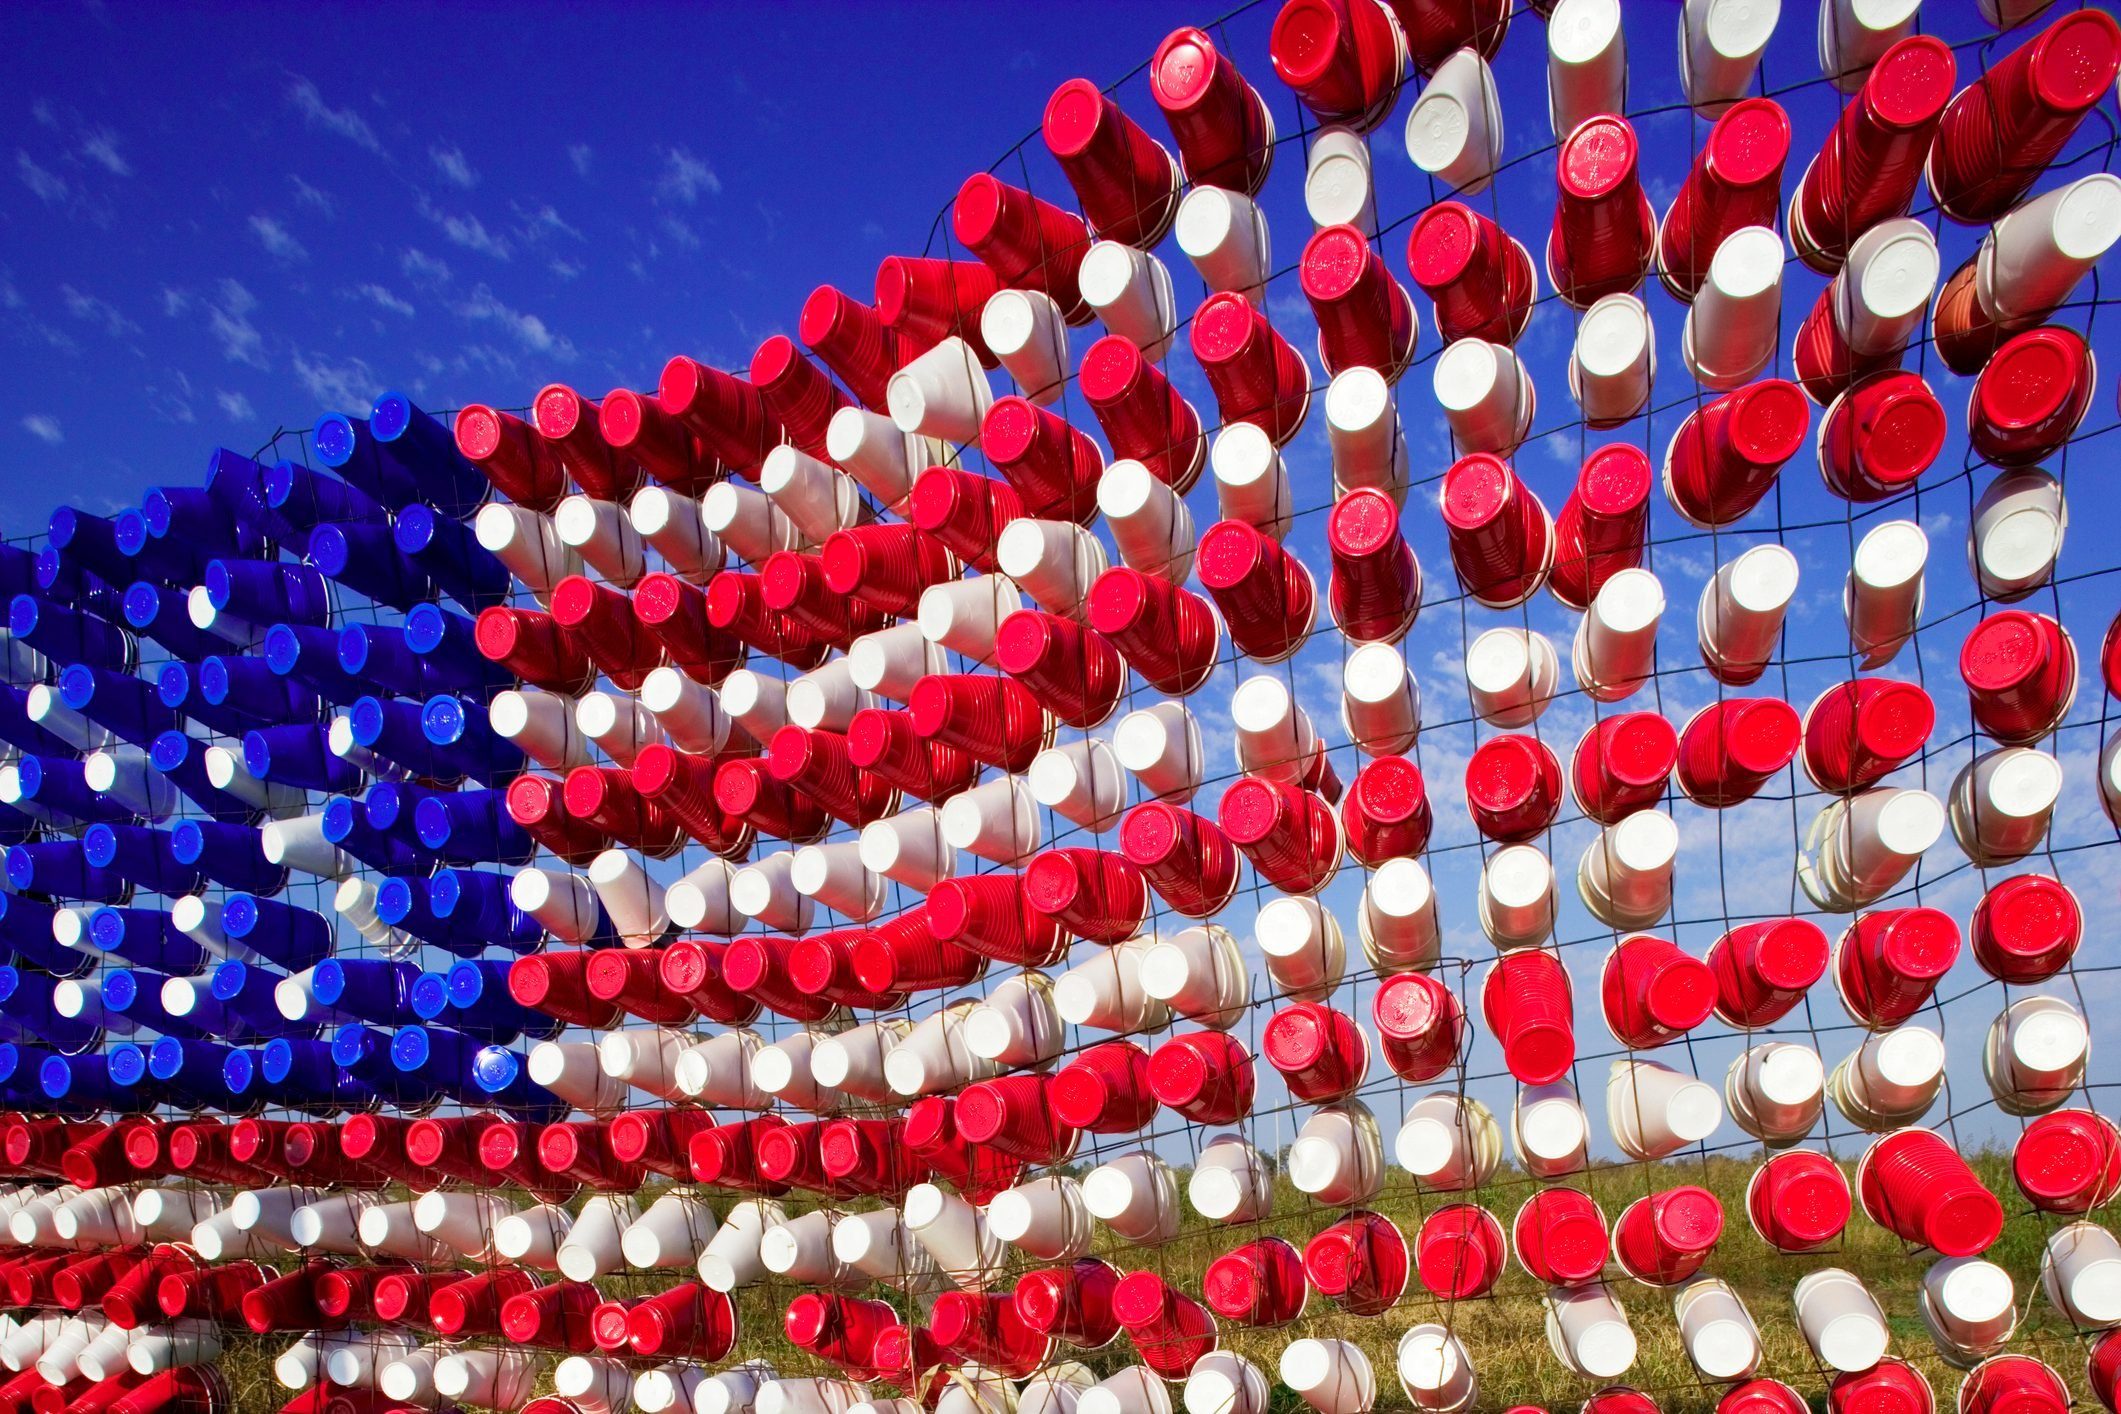 American Flag created out of empty plastic cups stuck in a fence, Leland